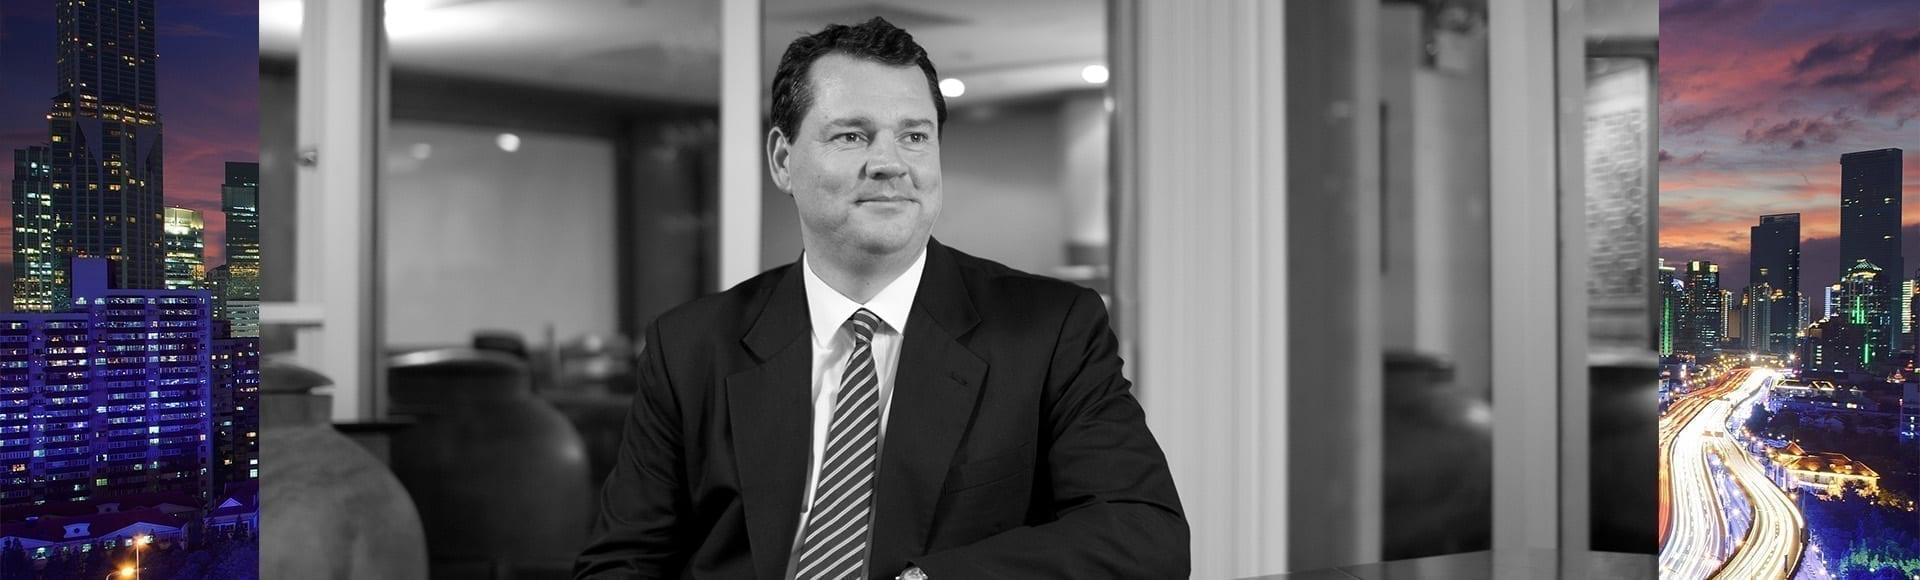 Russell Bennett - Employment Law Solicitor Hong Kong Regulatory Lawyer